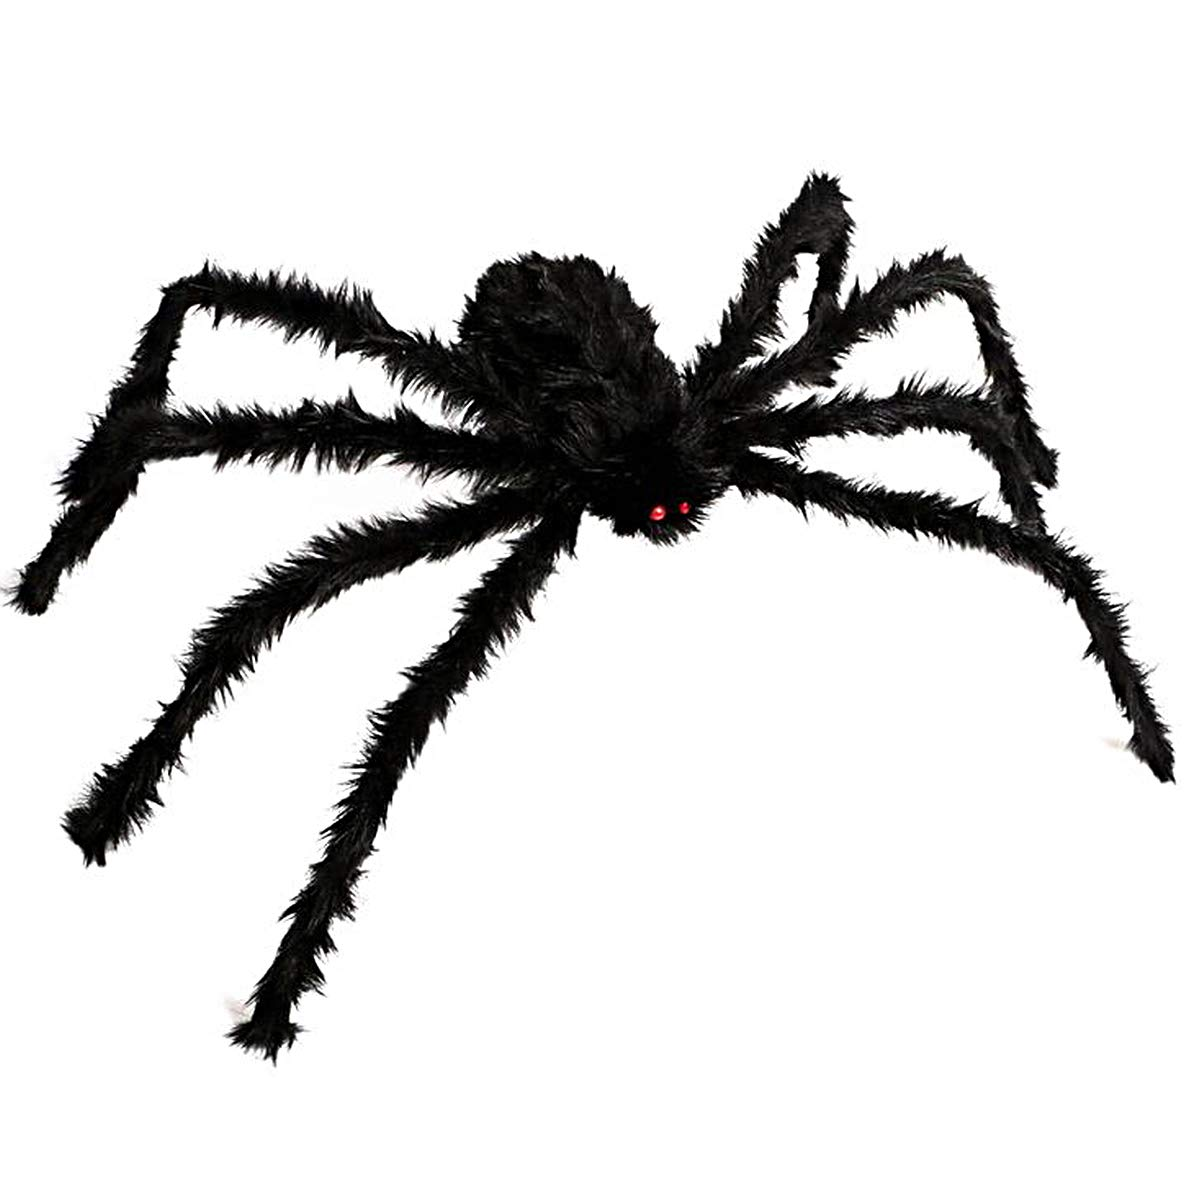 Halloween Scary Giant Spider 6.6 Ft. 200cm Fake Large Hairy Spider Props for Outdoor Decor & Yard Decorations